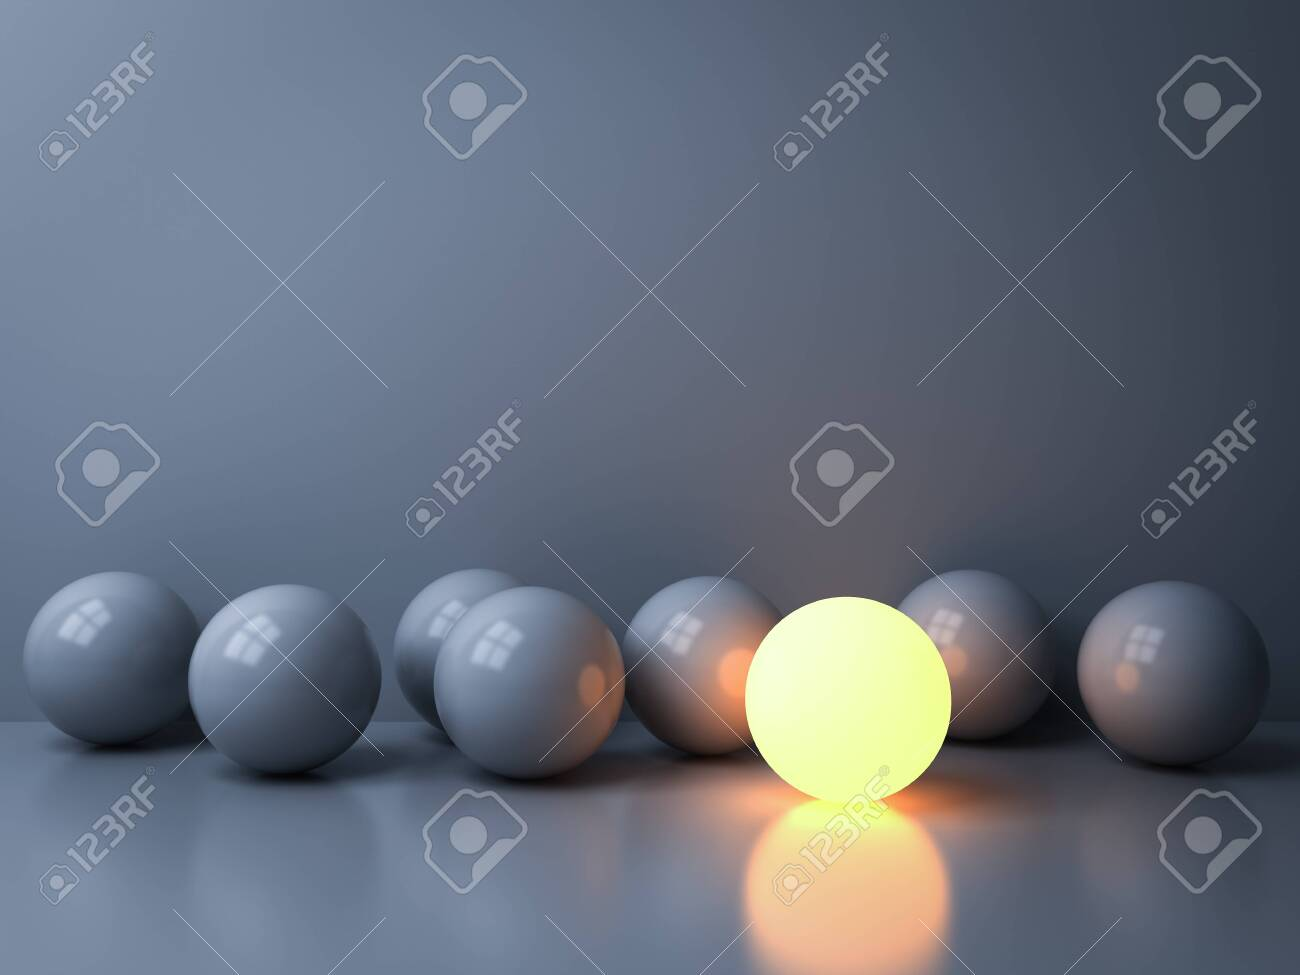 Stand out from the crowd and Leadership creative idea concepts One luminous sphere shining among other dim spheres on white background in the dark with reflections and shadows 3D rendering - 123201797